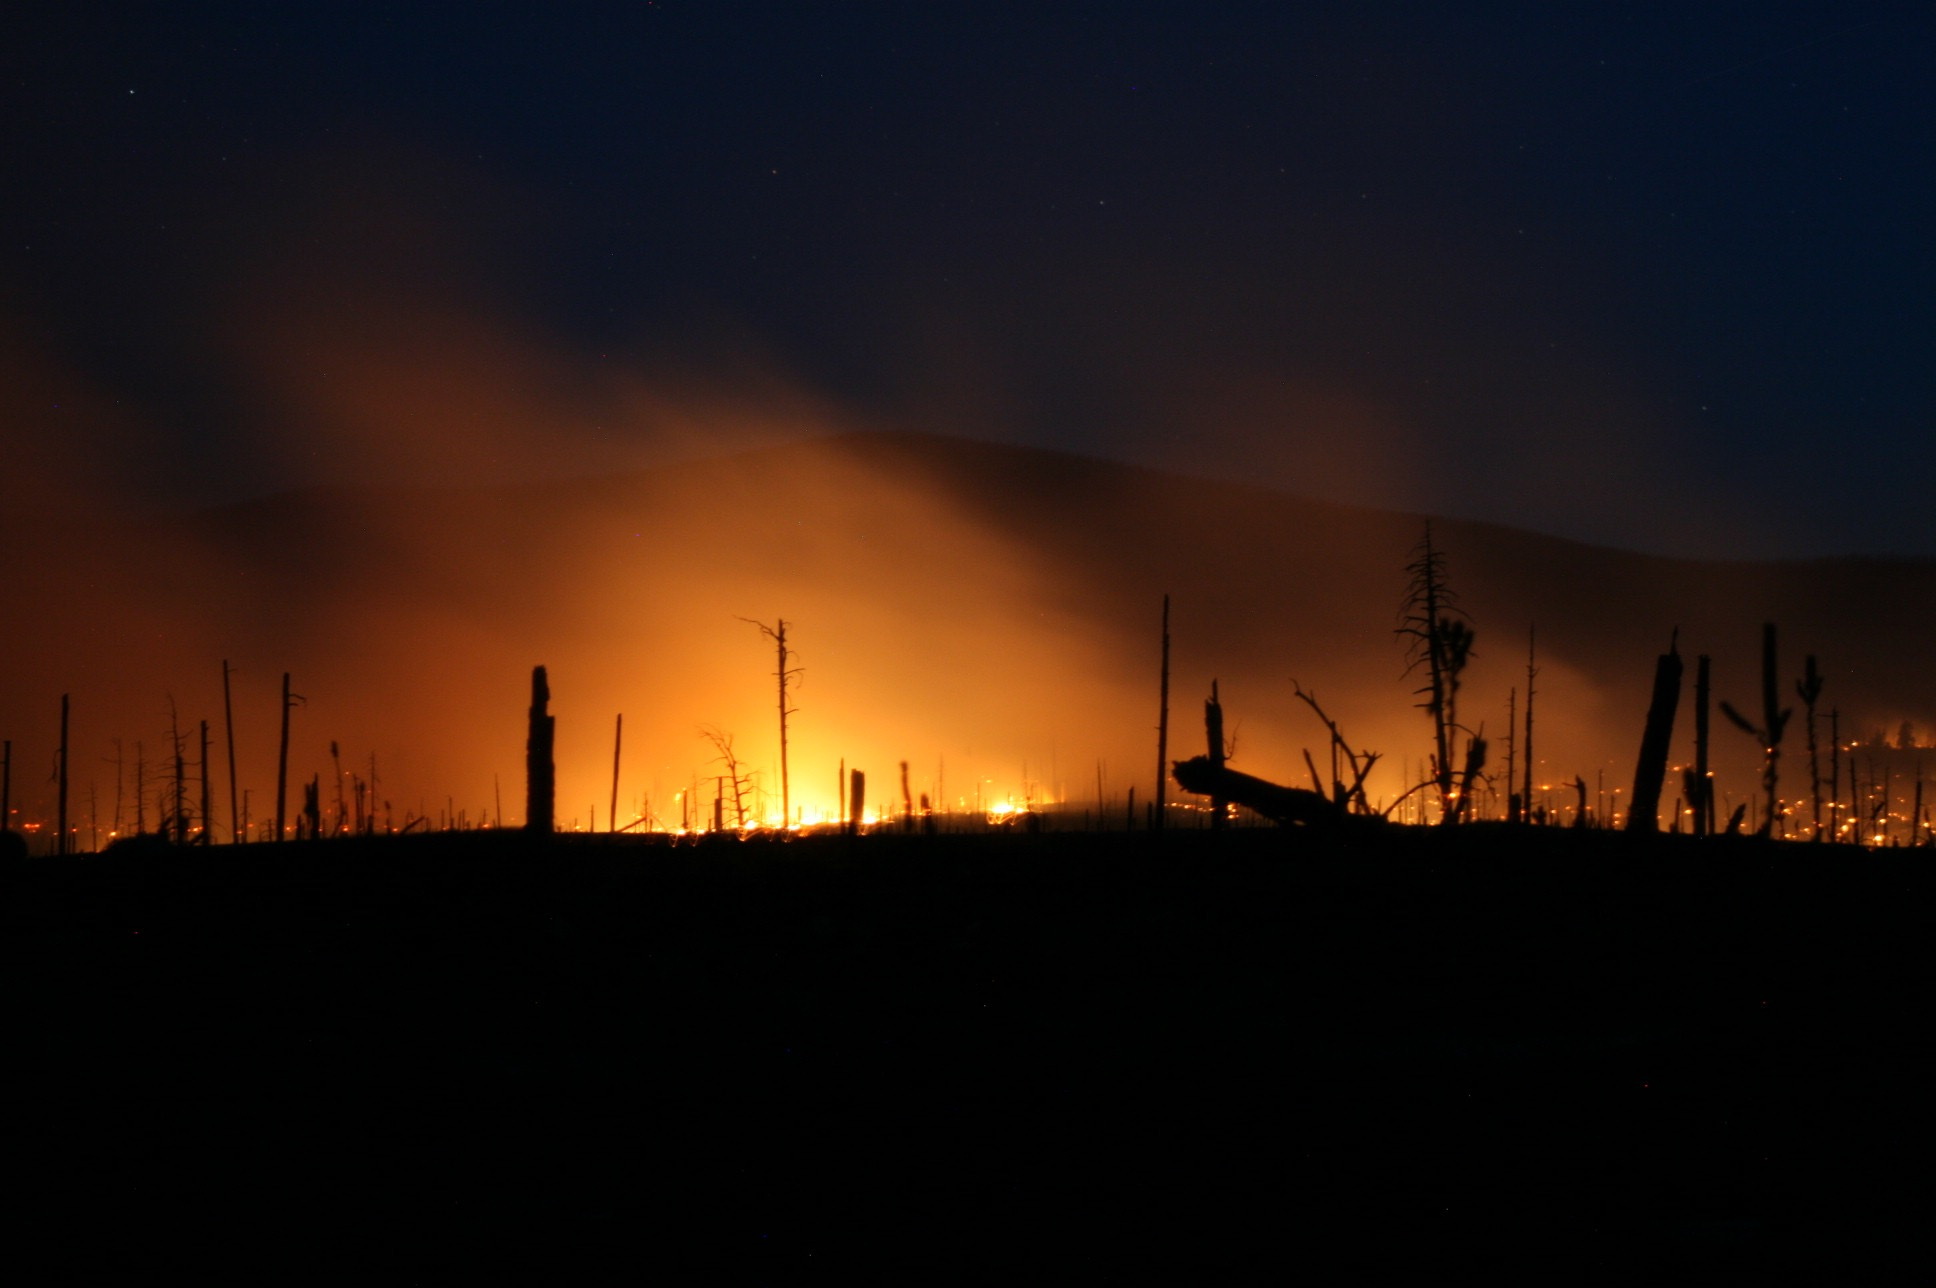 Fires raged as we made our way to the campground.